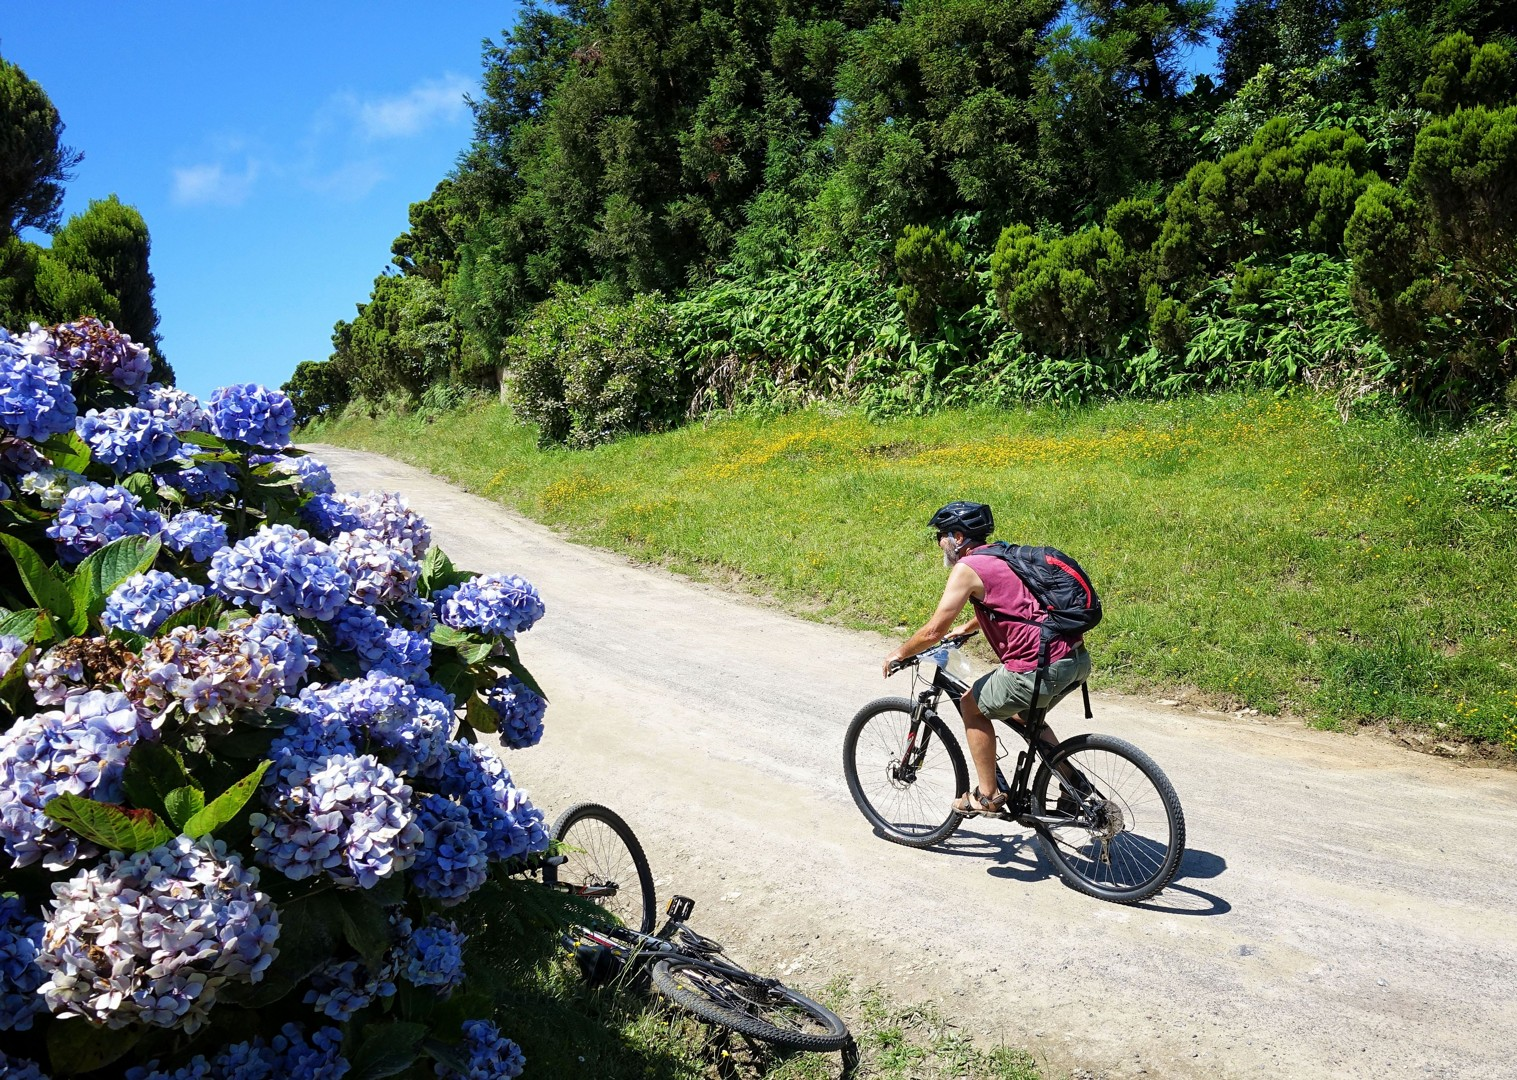 self-guided-leisure-cycling-in-tronqueira-forests.jpg - The Azores - Islands and Volcanoes - Self-Guided Leisure Cycling Holiday - Leisure Cycling